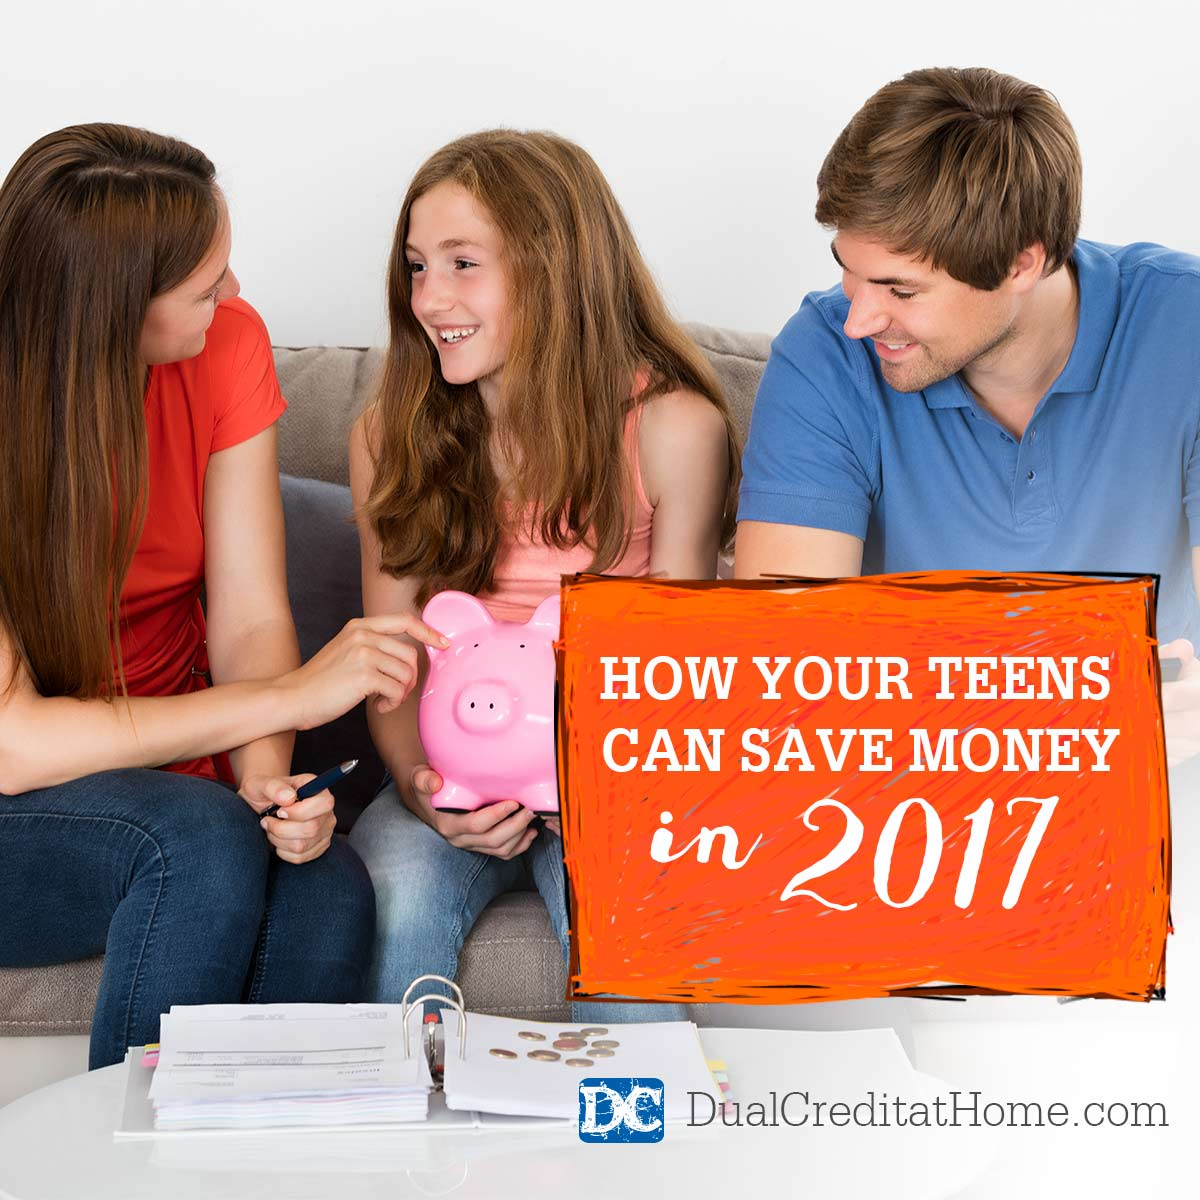 How Your Teens Can Save Money in 2017